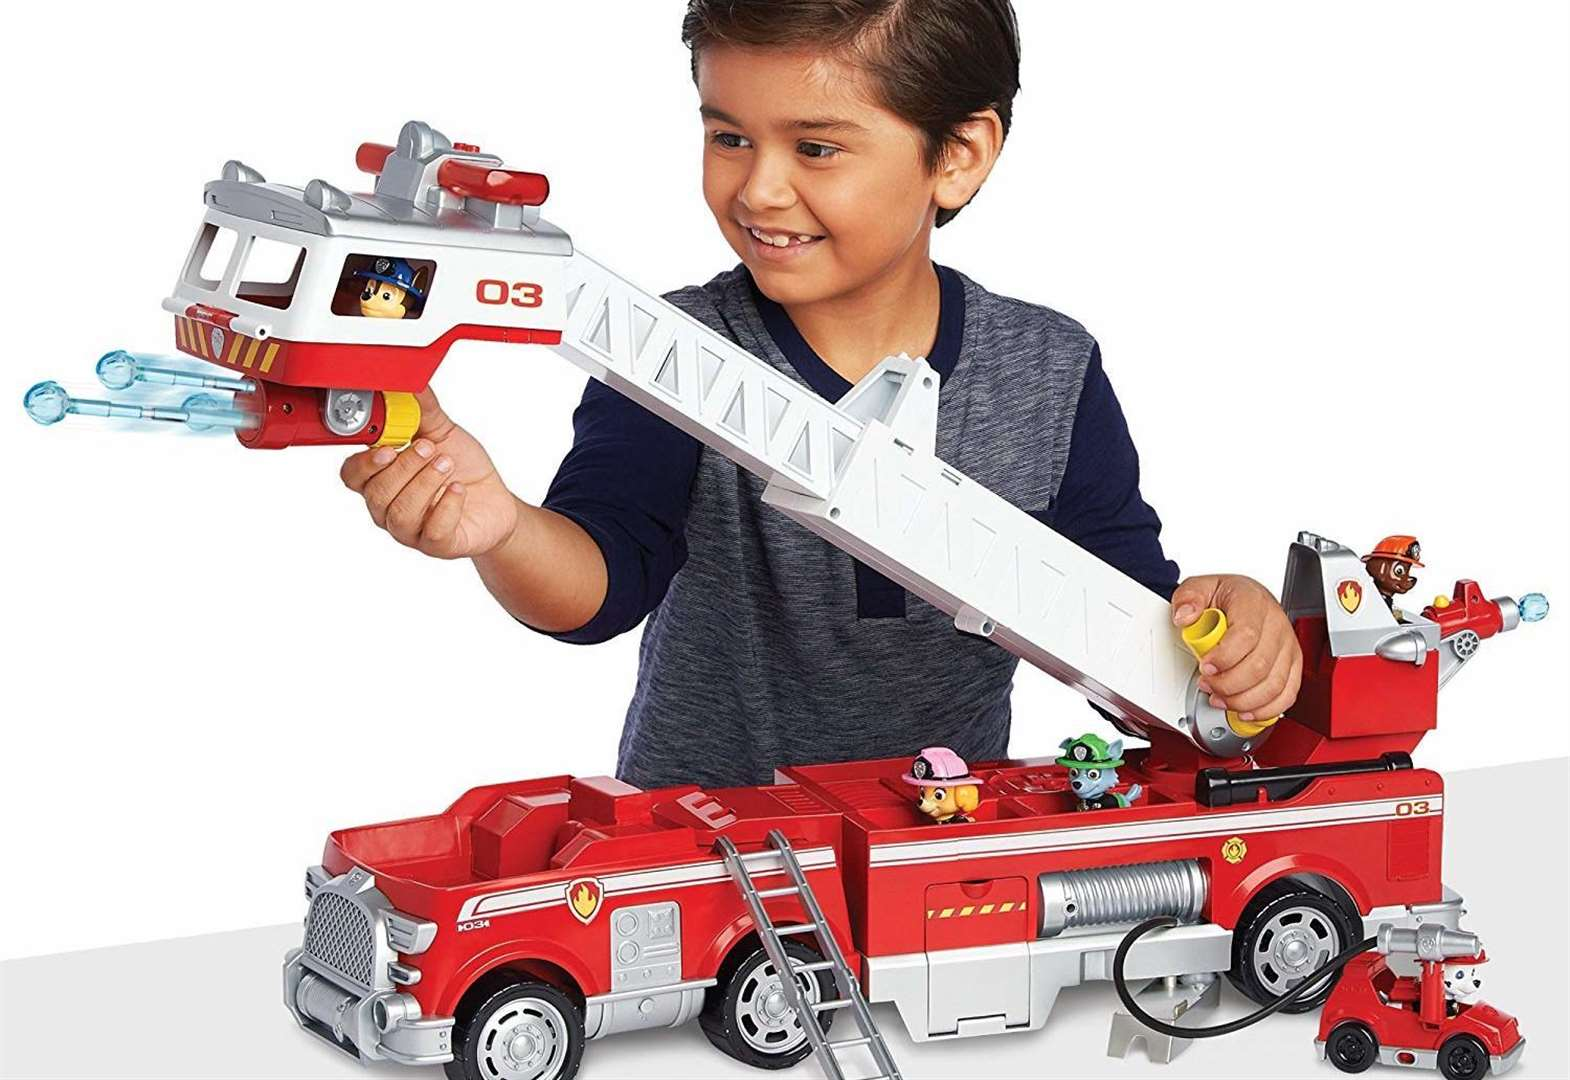 The ultimate top toys list for Christmas